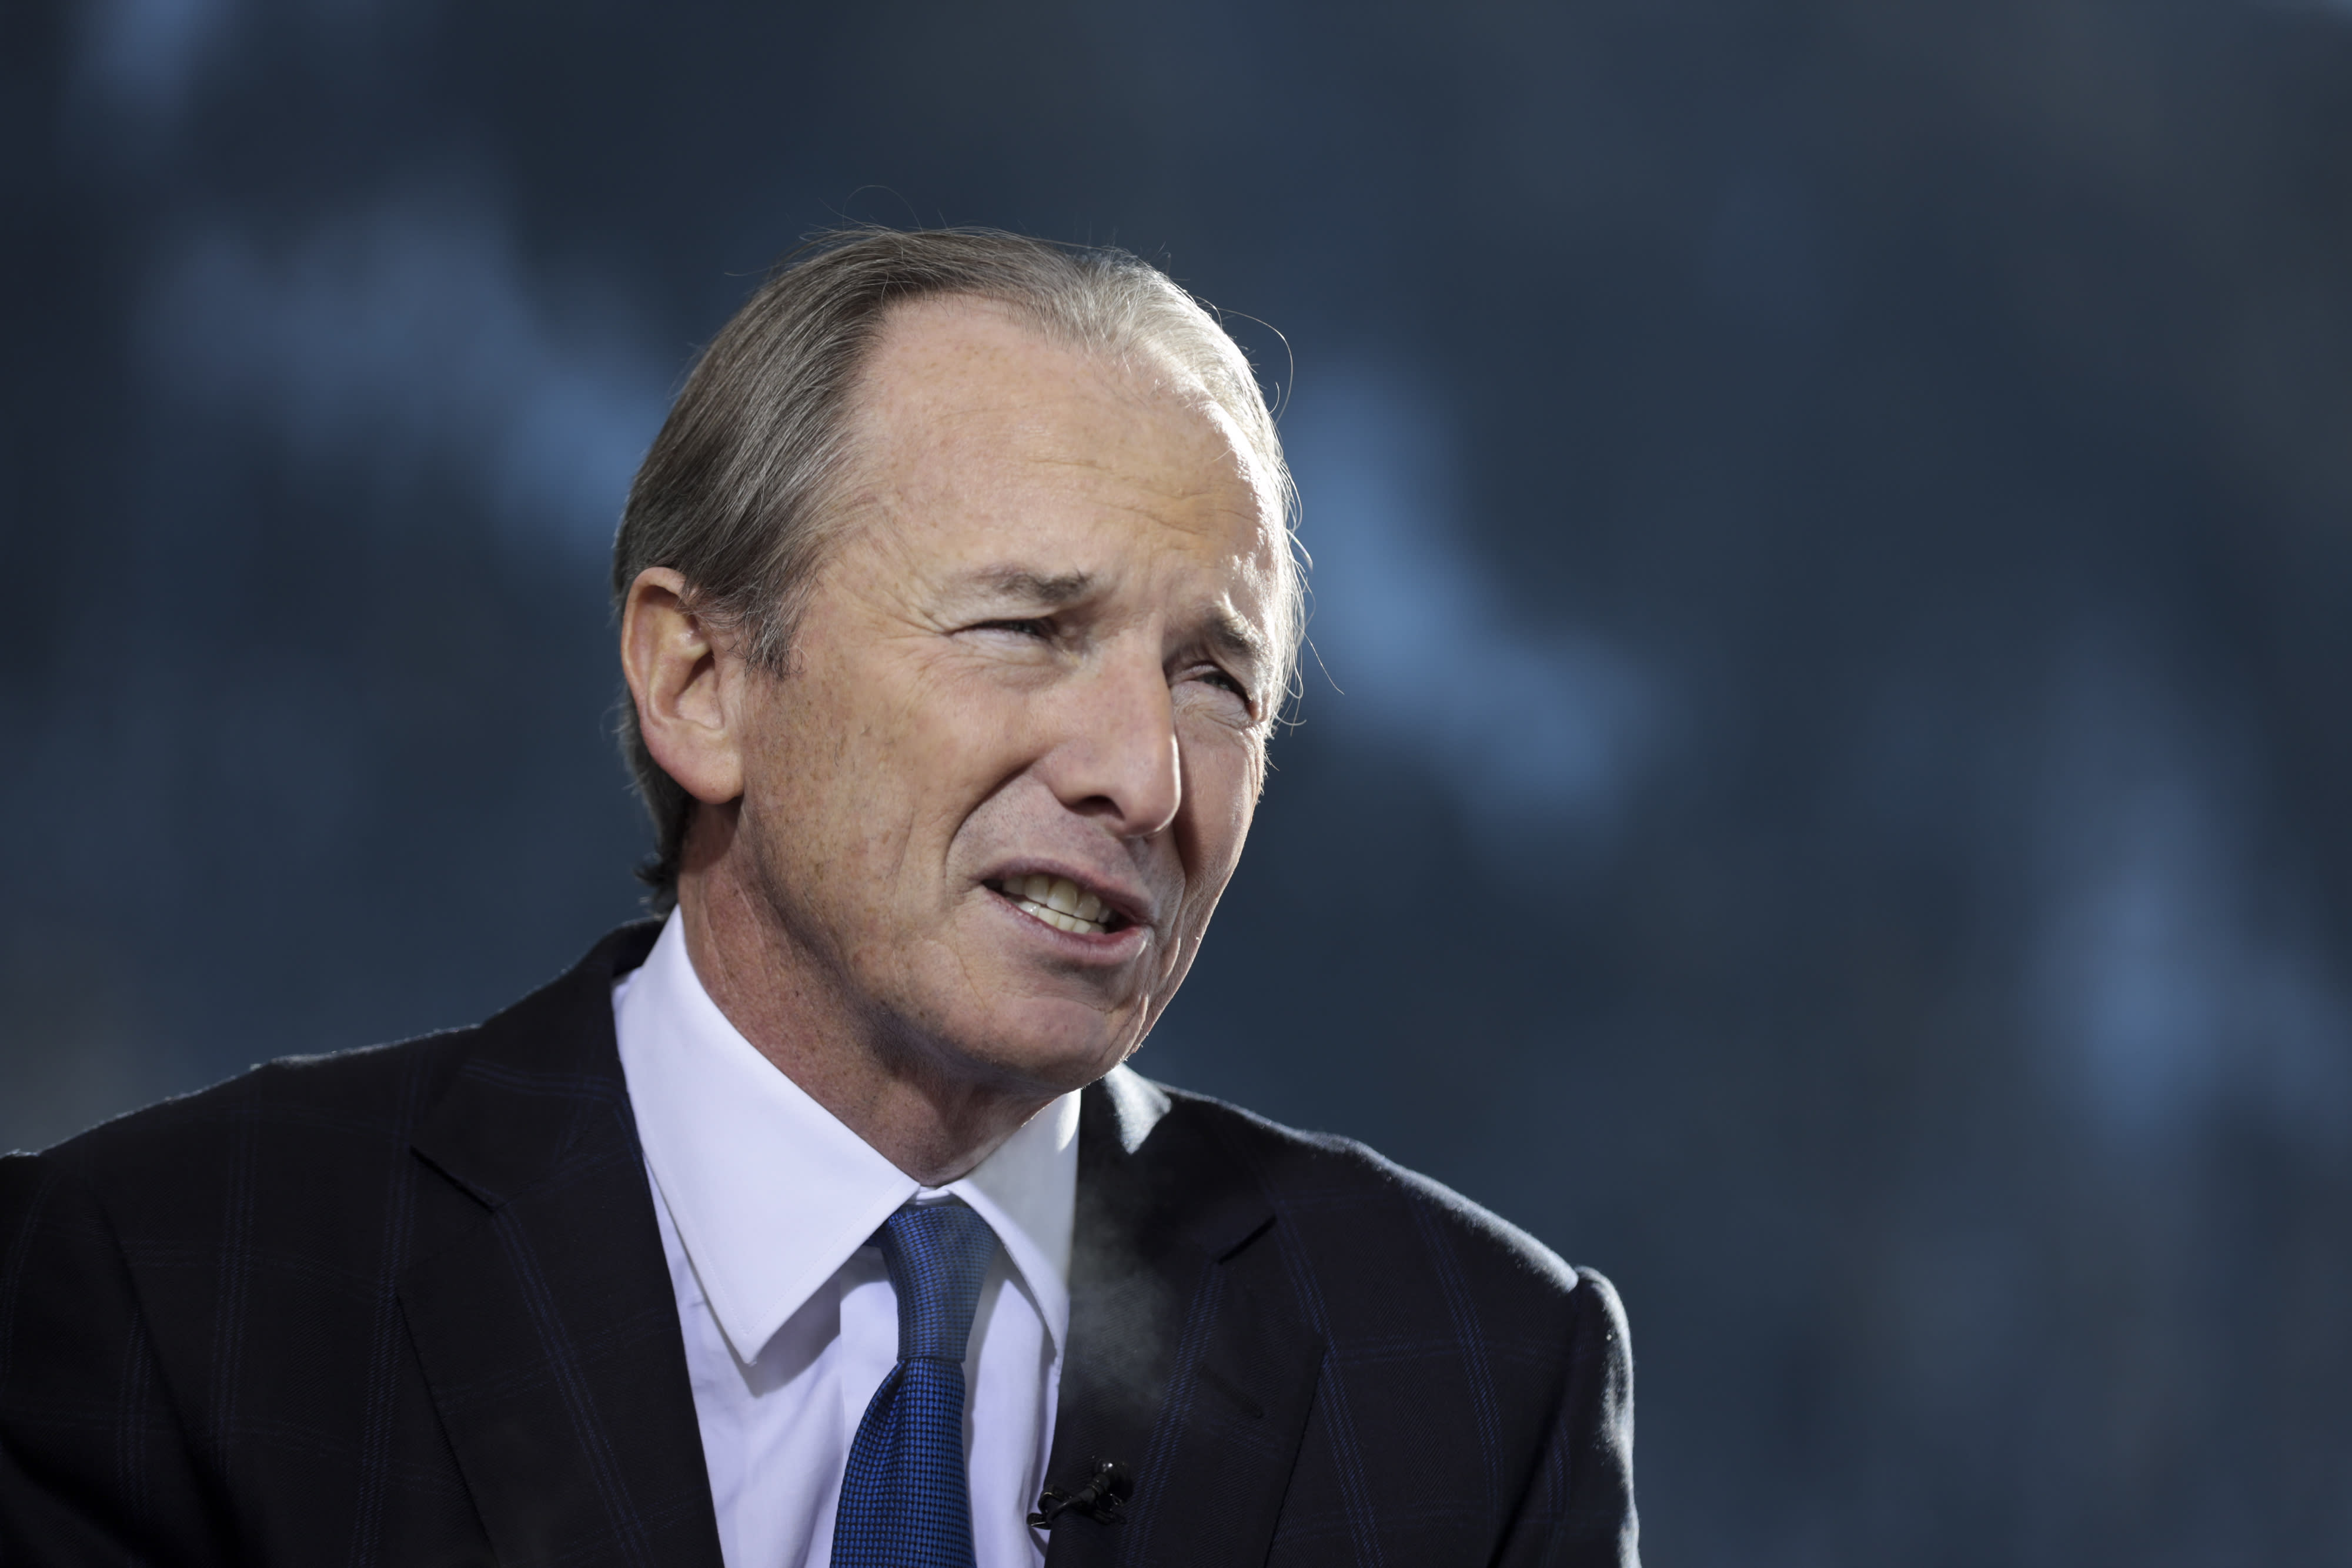 Morgan Stanley is set to report third-quarter earnings – here's what the Street expects